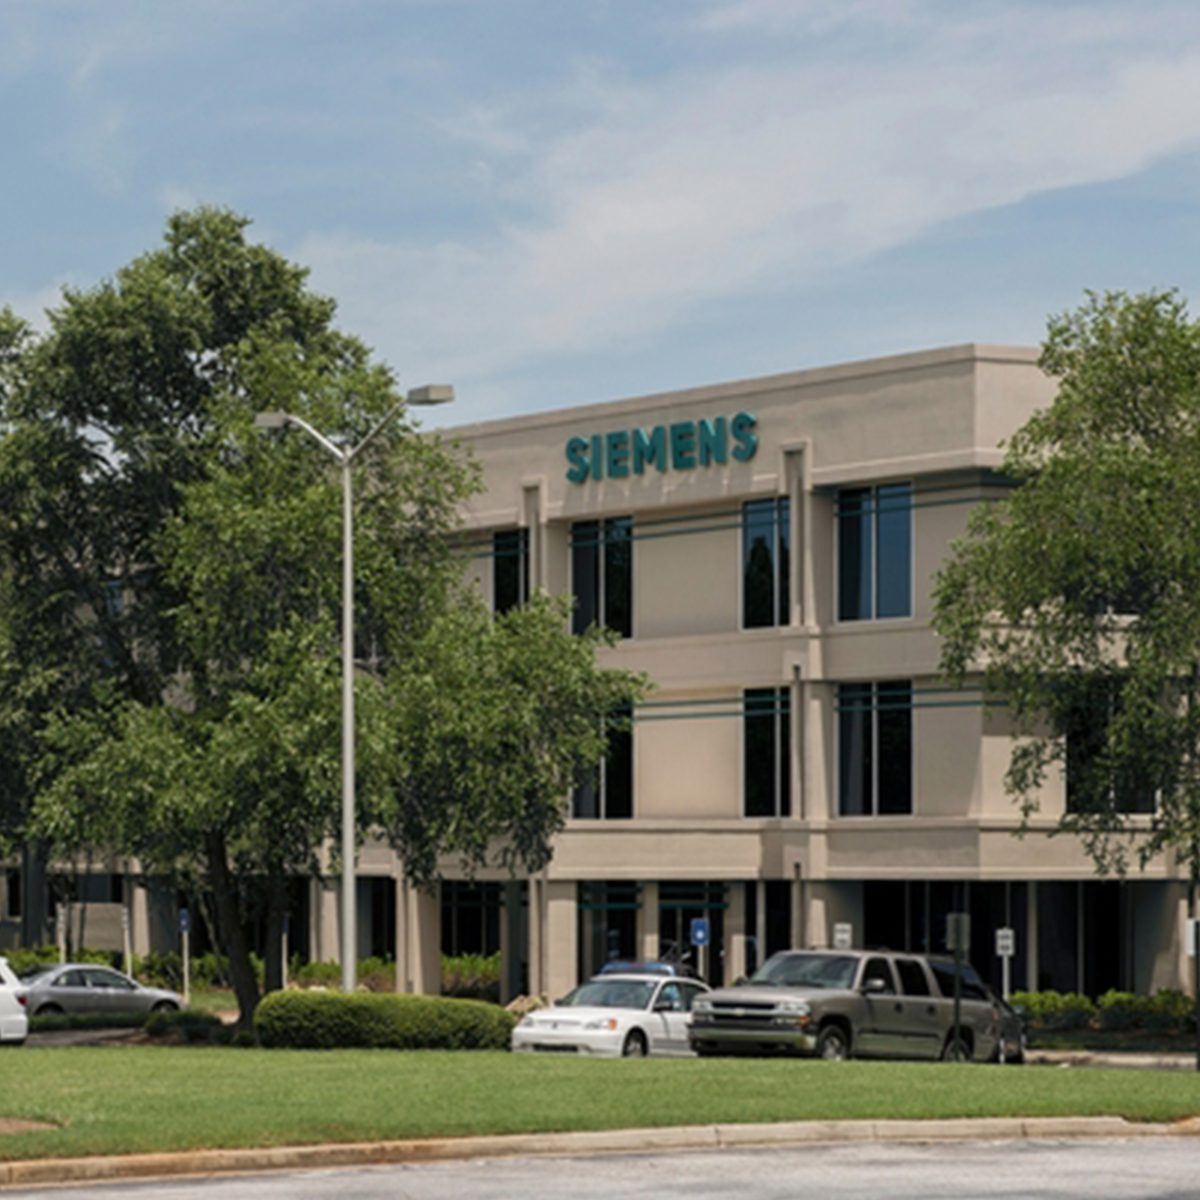 USA | Siemens Jobs & Careers | Locations | Siemens Jobs